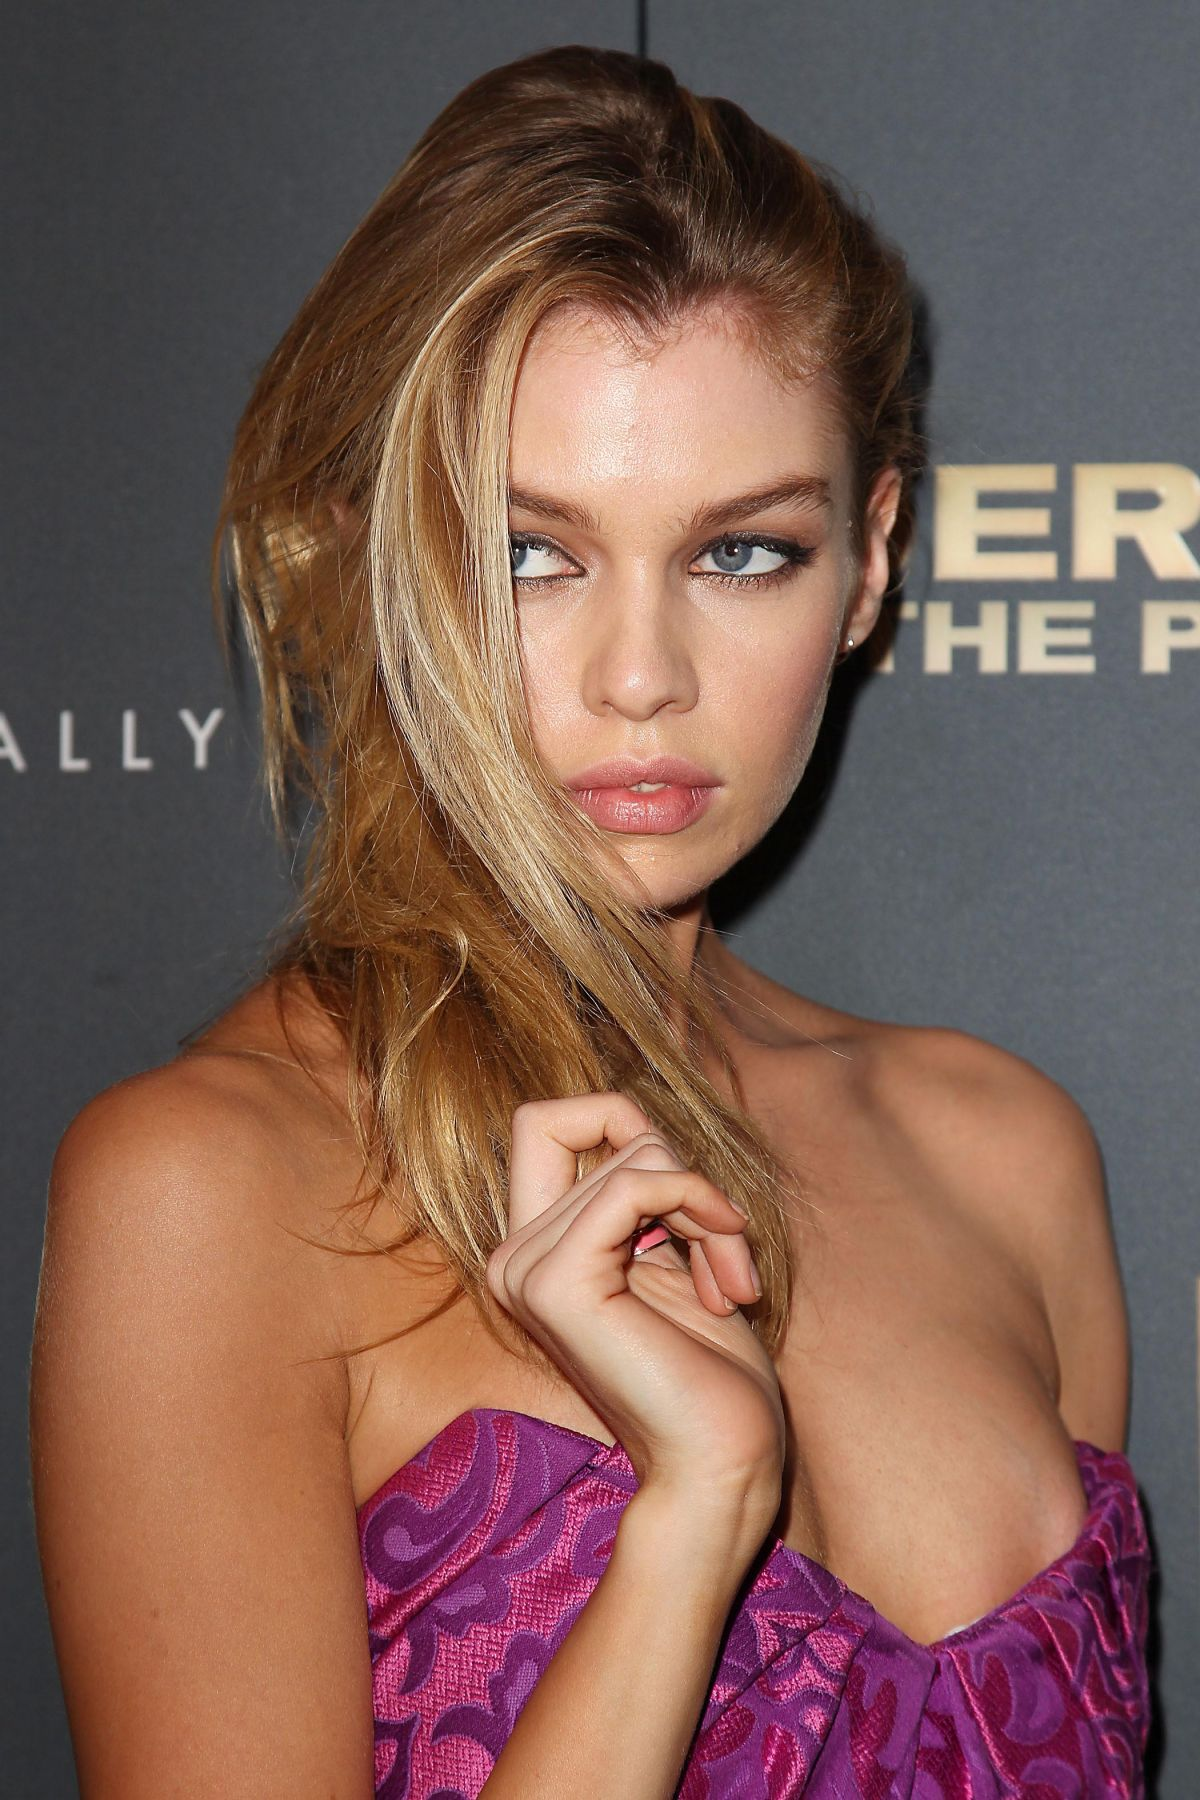 STELLA MAXWELL at Jeremy Scott: The People's Designer Premiere in ...